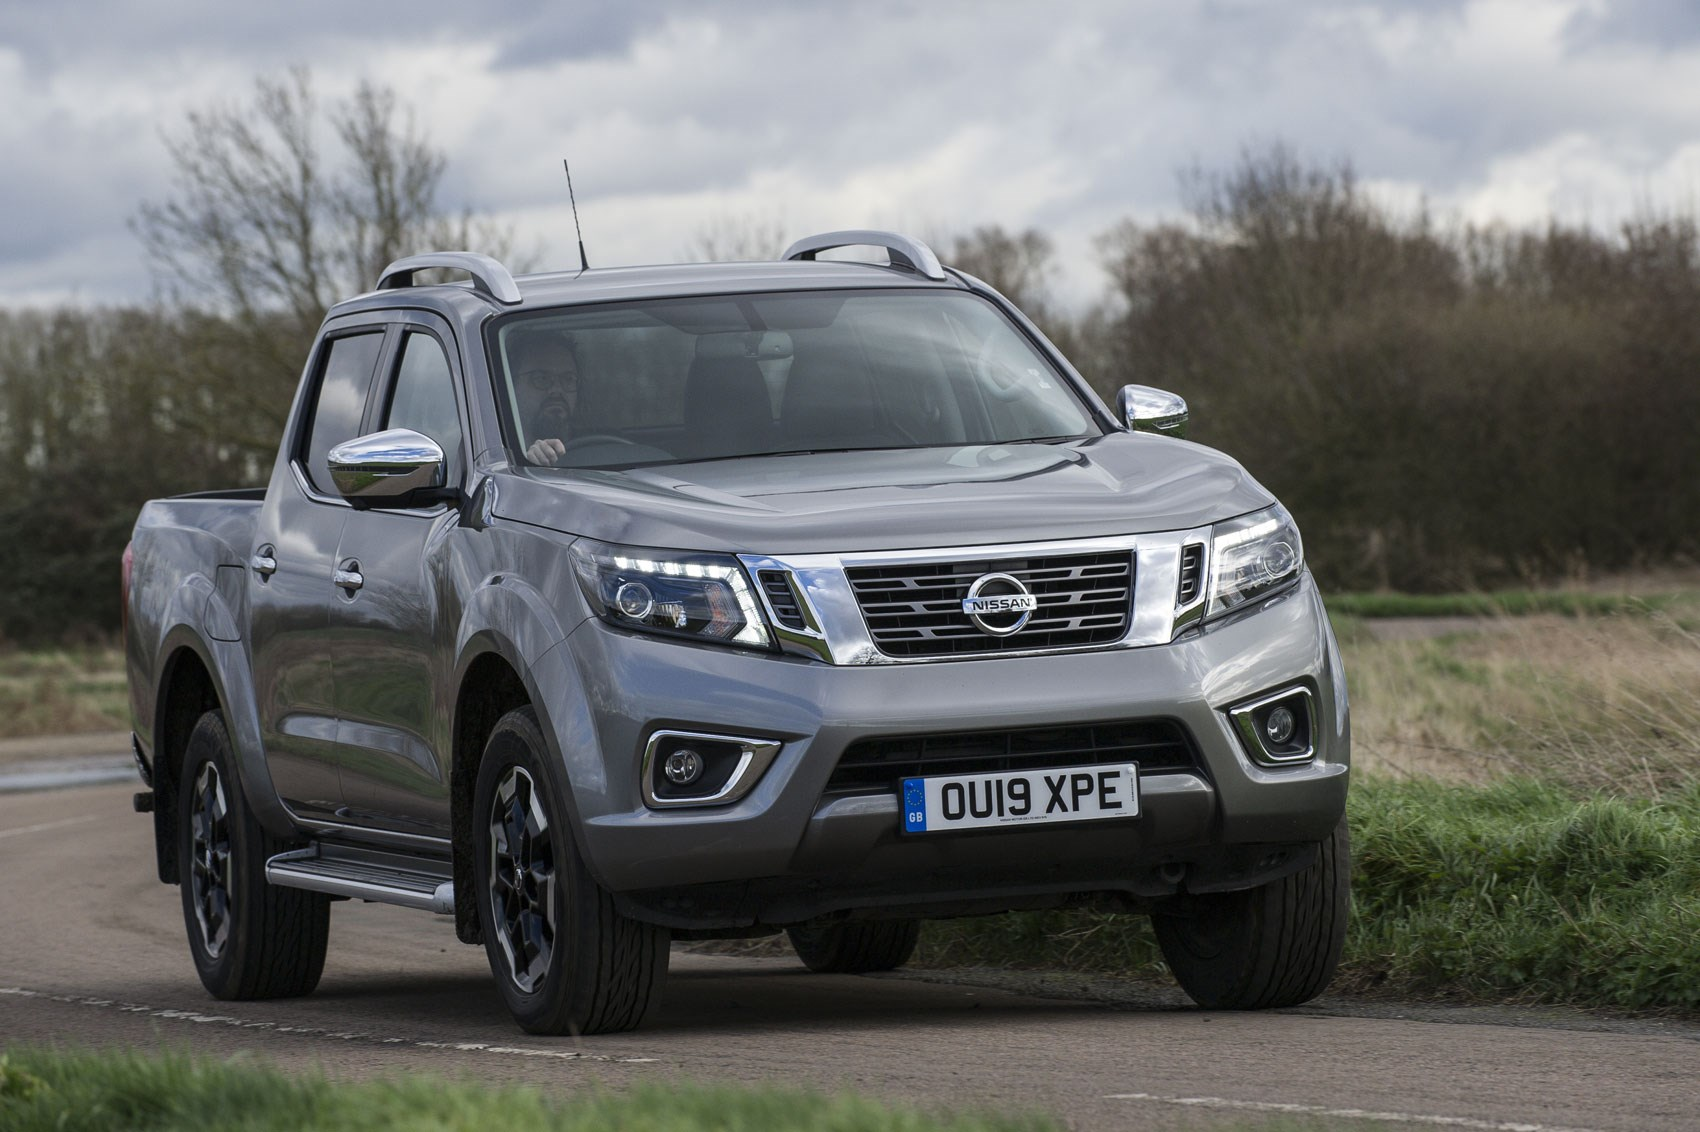 Nissan Navara review, 2019 update model, front view, driving